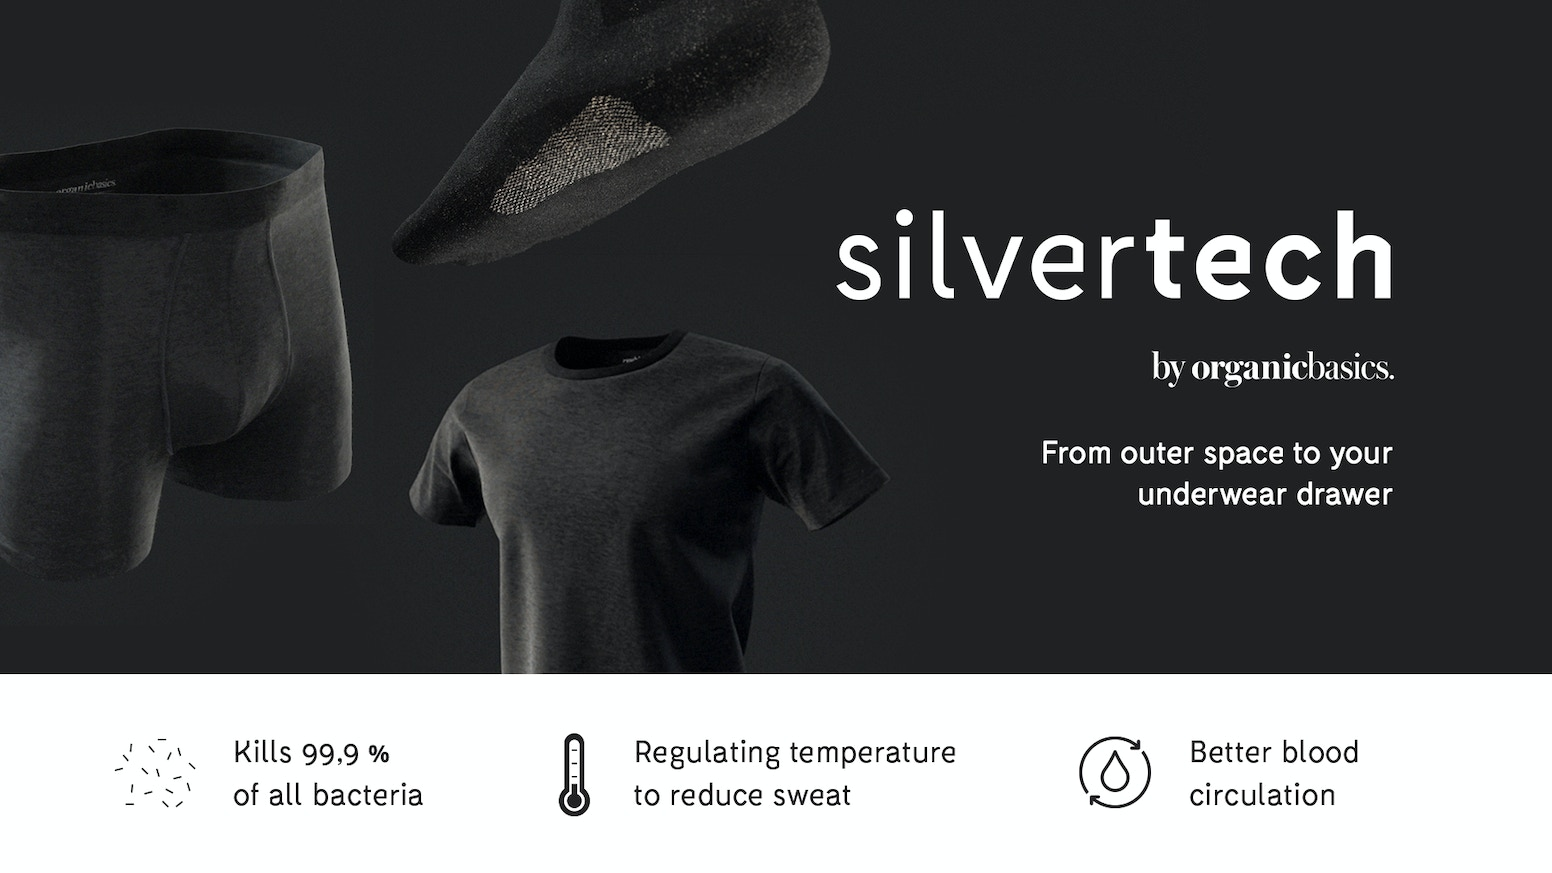 Silvertech Odorless Underwear Made With Pure Silver By